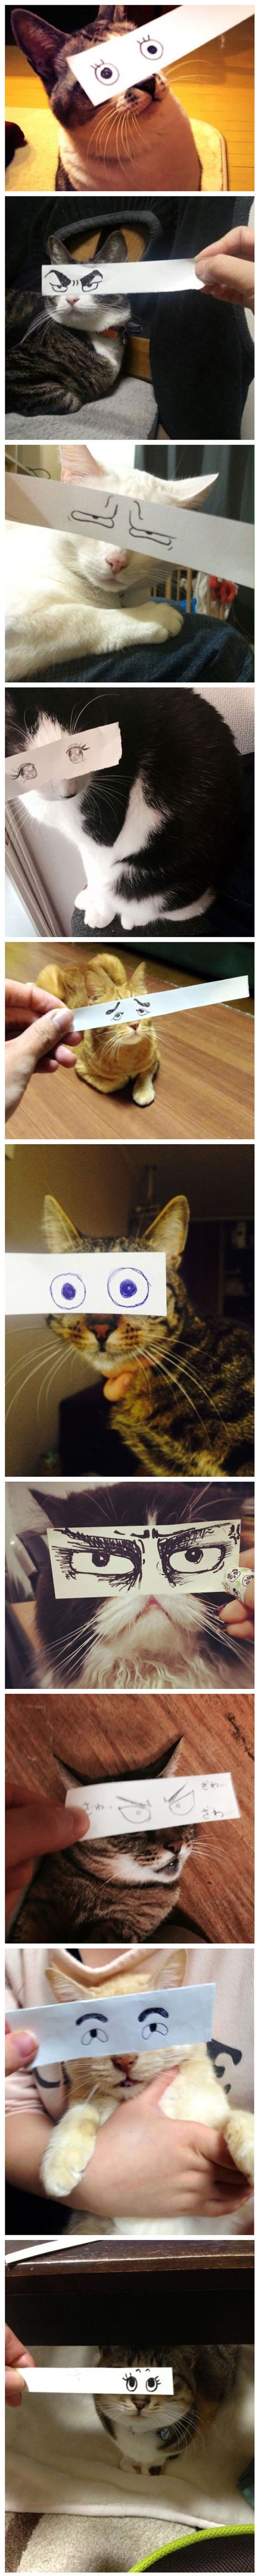 "12 Funny Pictures Of Cats With ""Paper"" Eyes"